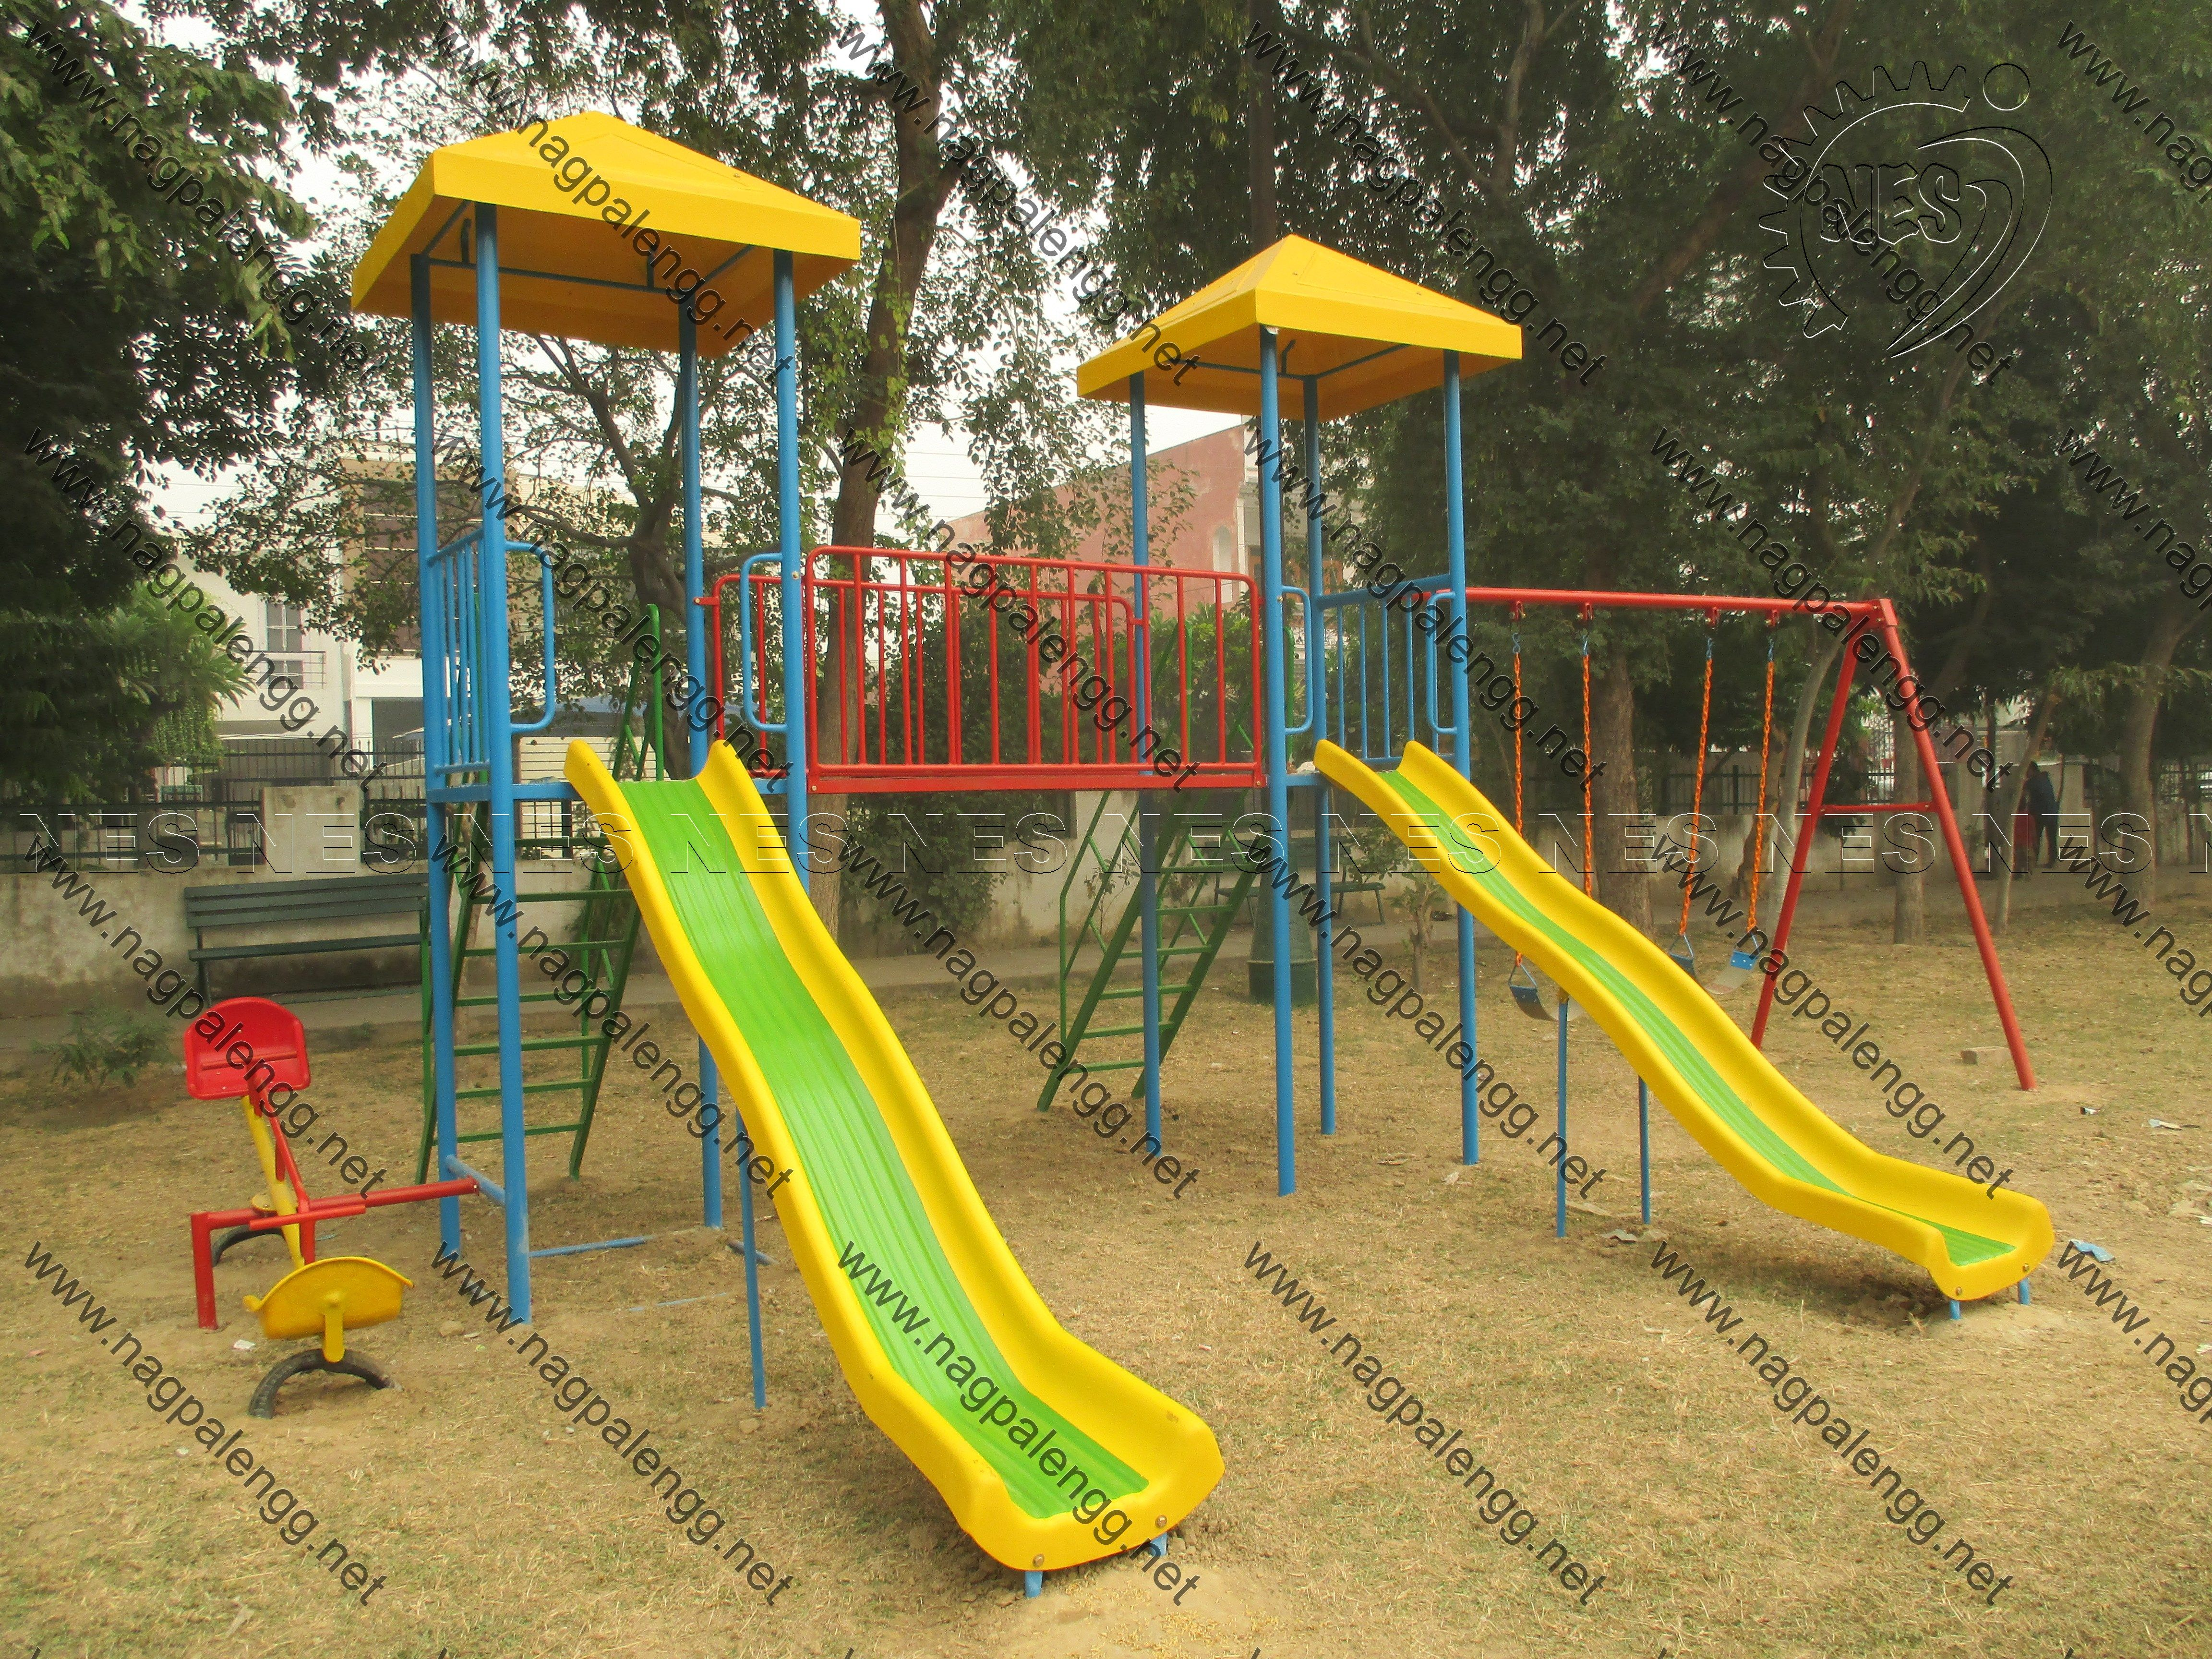 outdoor play equipment India, kids play equipment India